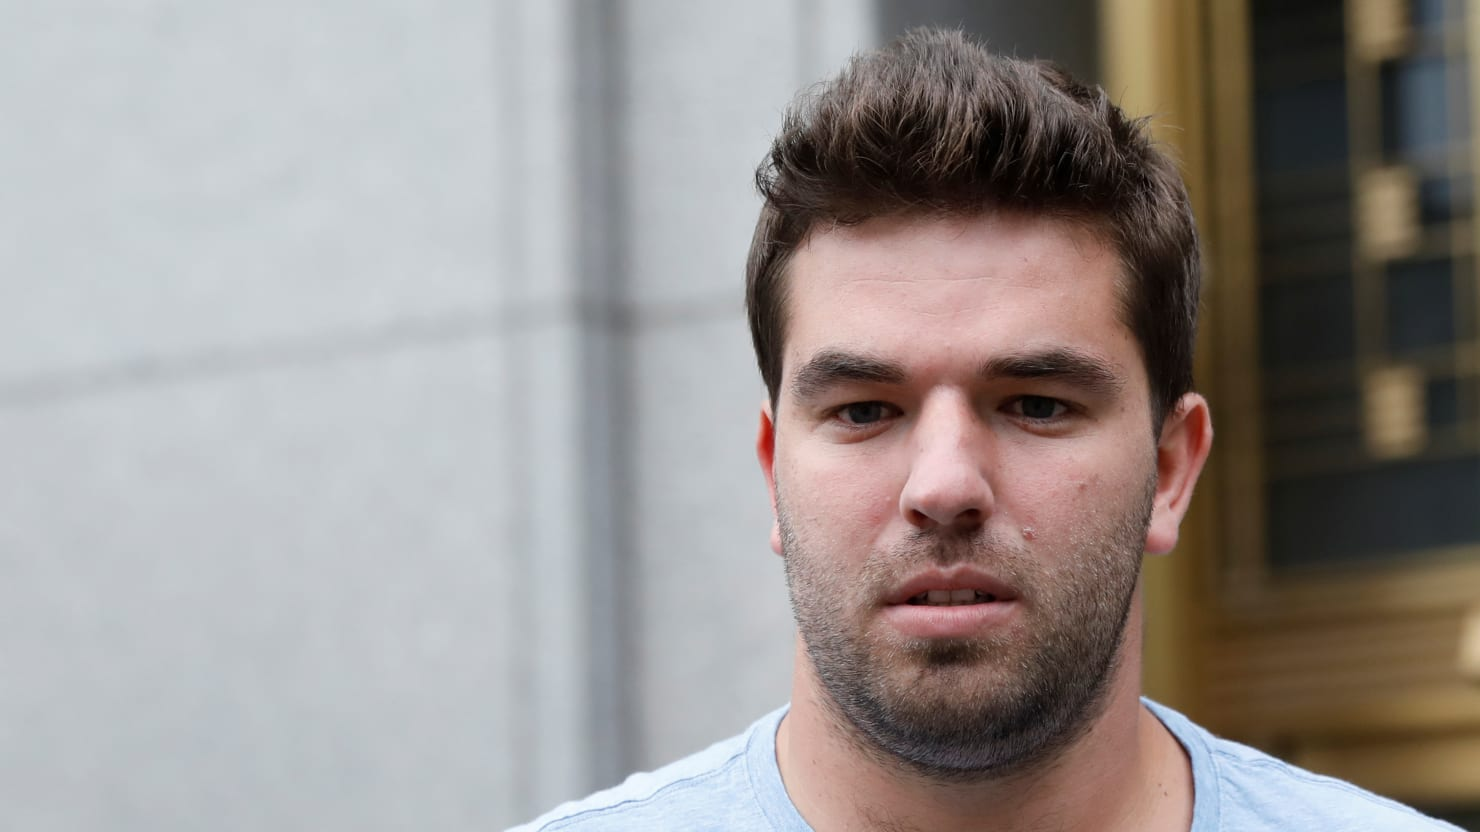 Billy McFarland Launches COVID-19 Effort in Prison, Swears It's Not a Scam